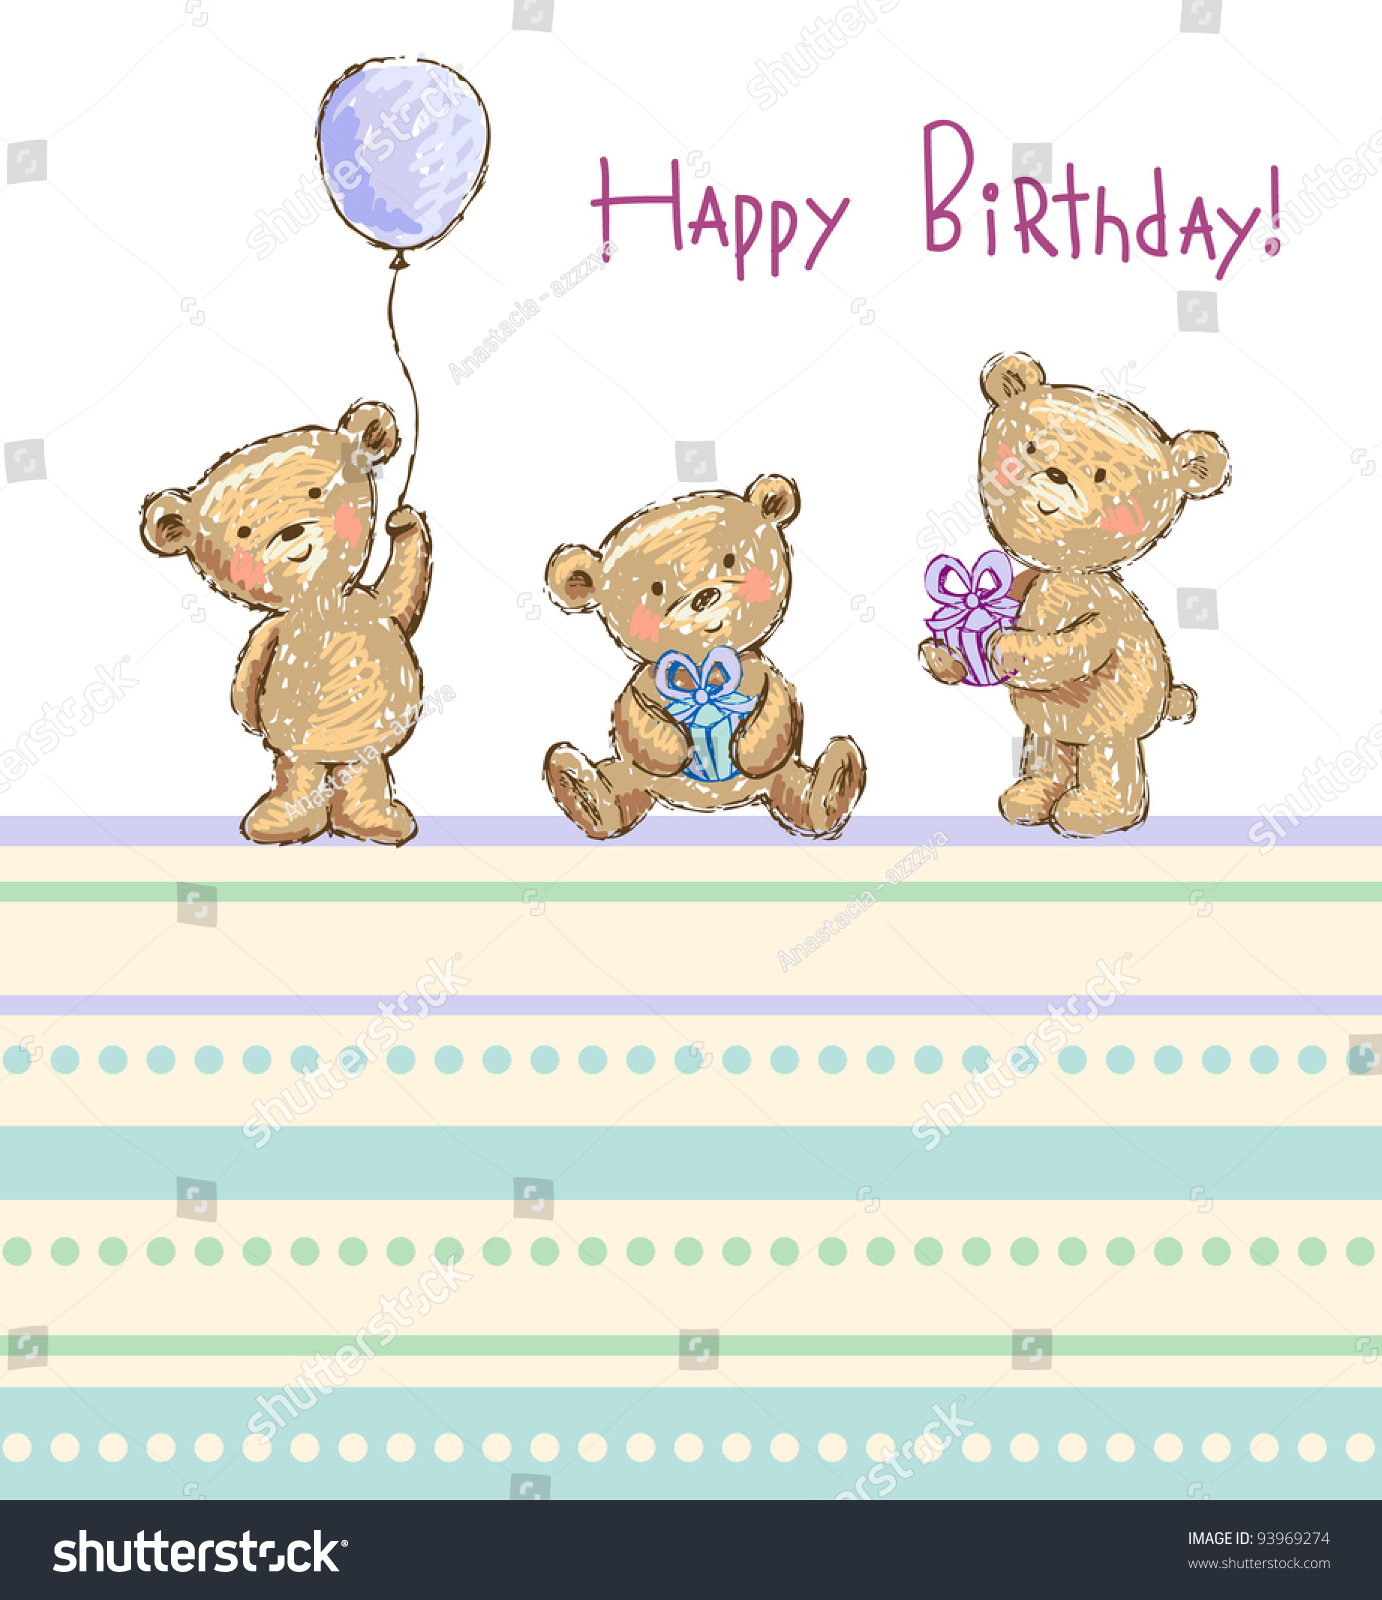 Birthday Greetings Cute Bears Vector Illustration Stock Vector